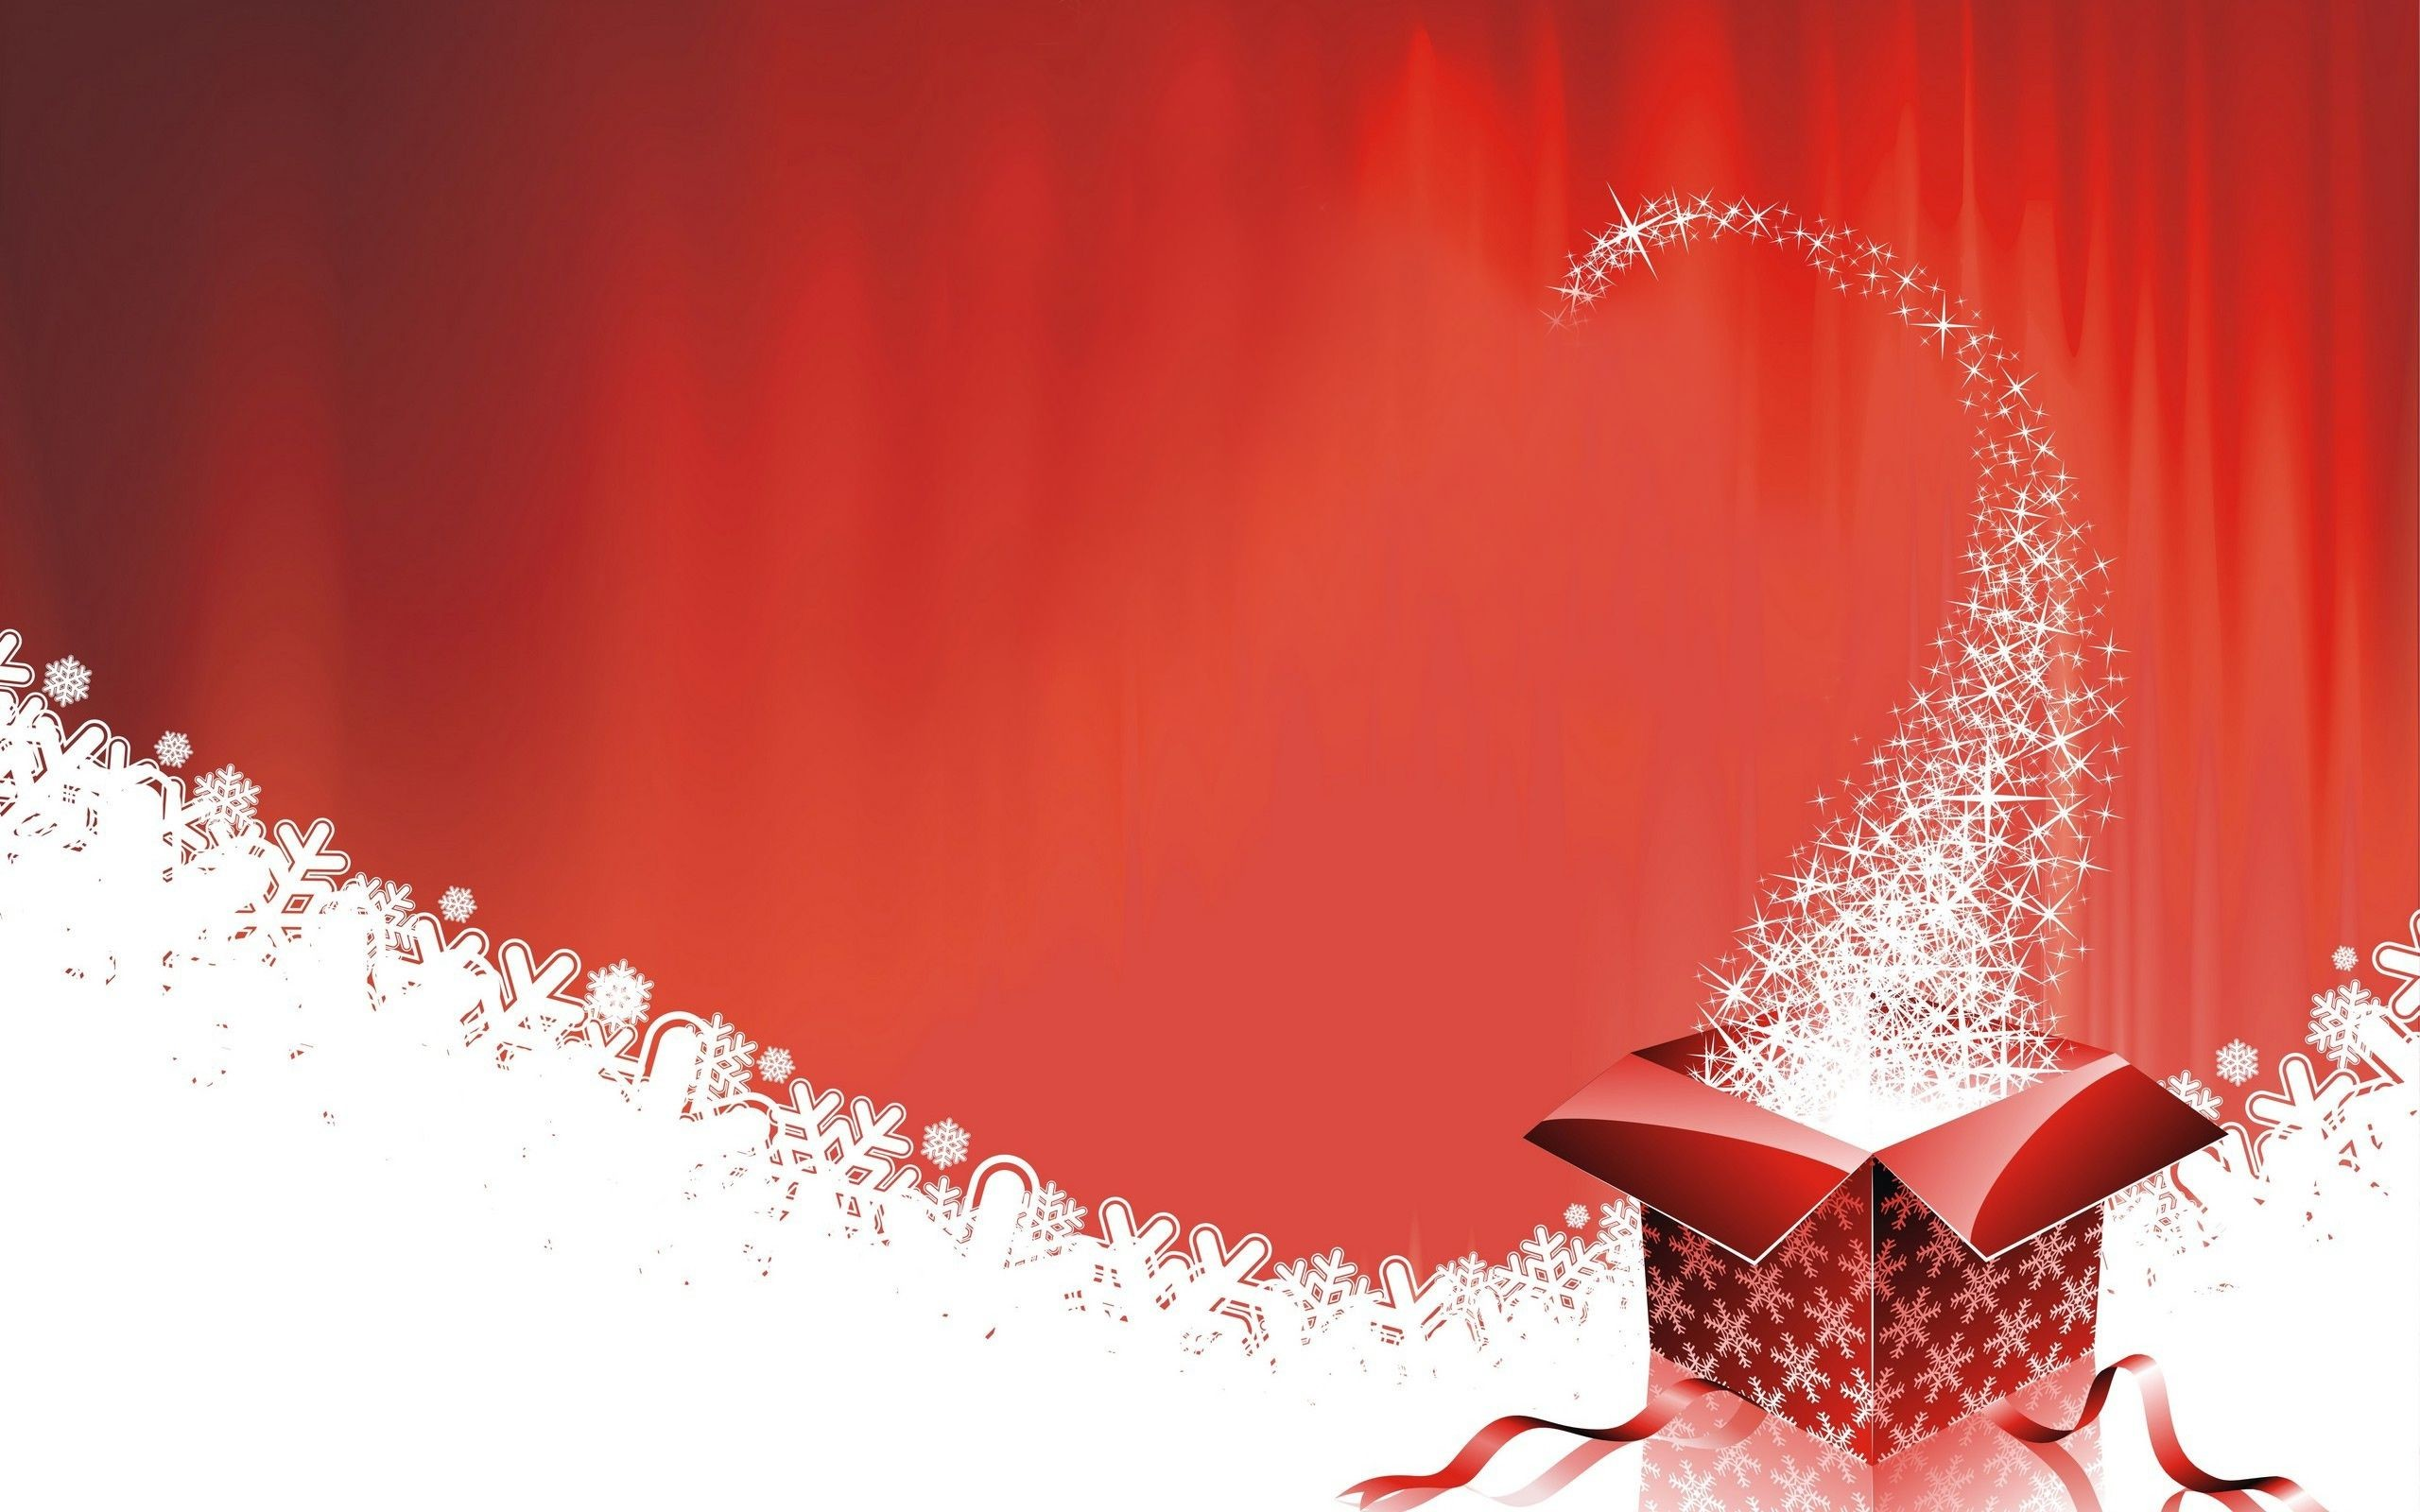 Res: 2560x1600, Christmas gift wallpapers and images wallpapers pictures photos